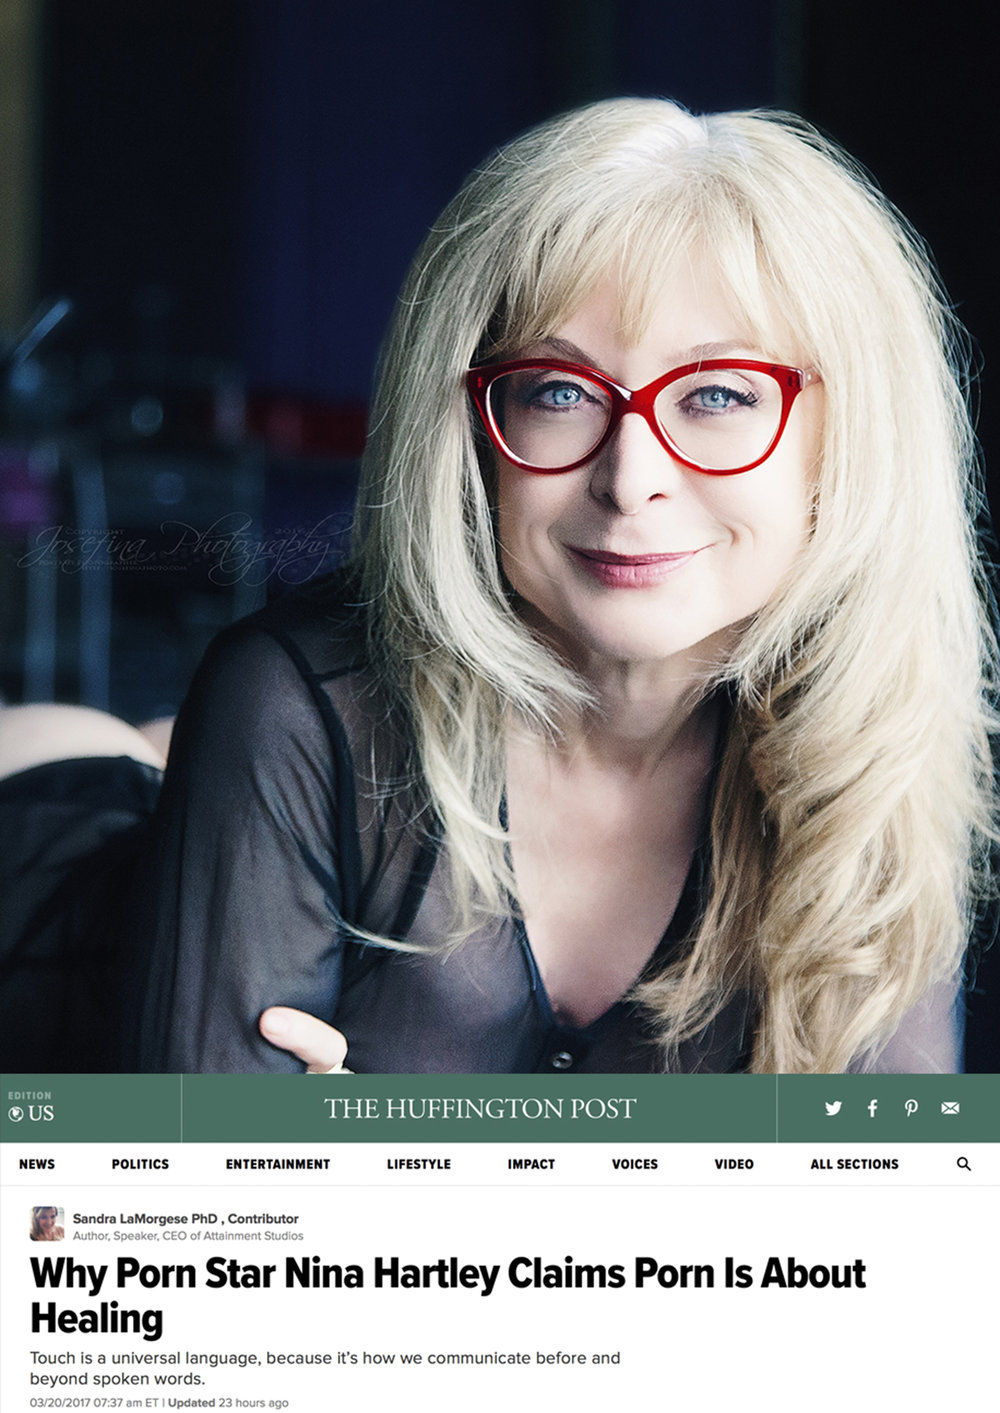 https://www.huffingtonpost.com/entry/porn-star-nina-hartley-claims-porn-isnt-all-about_us_58cfb9ece4b0537abd95729f